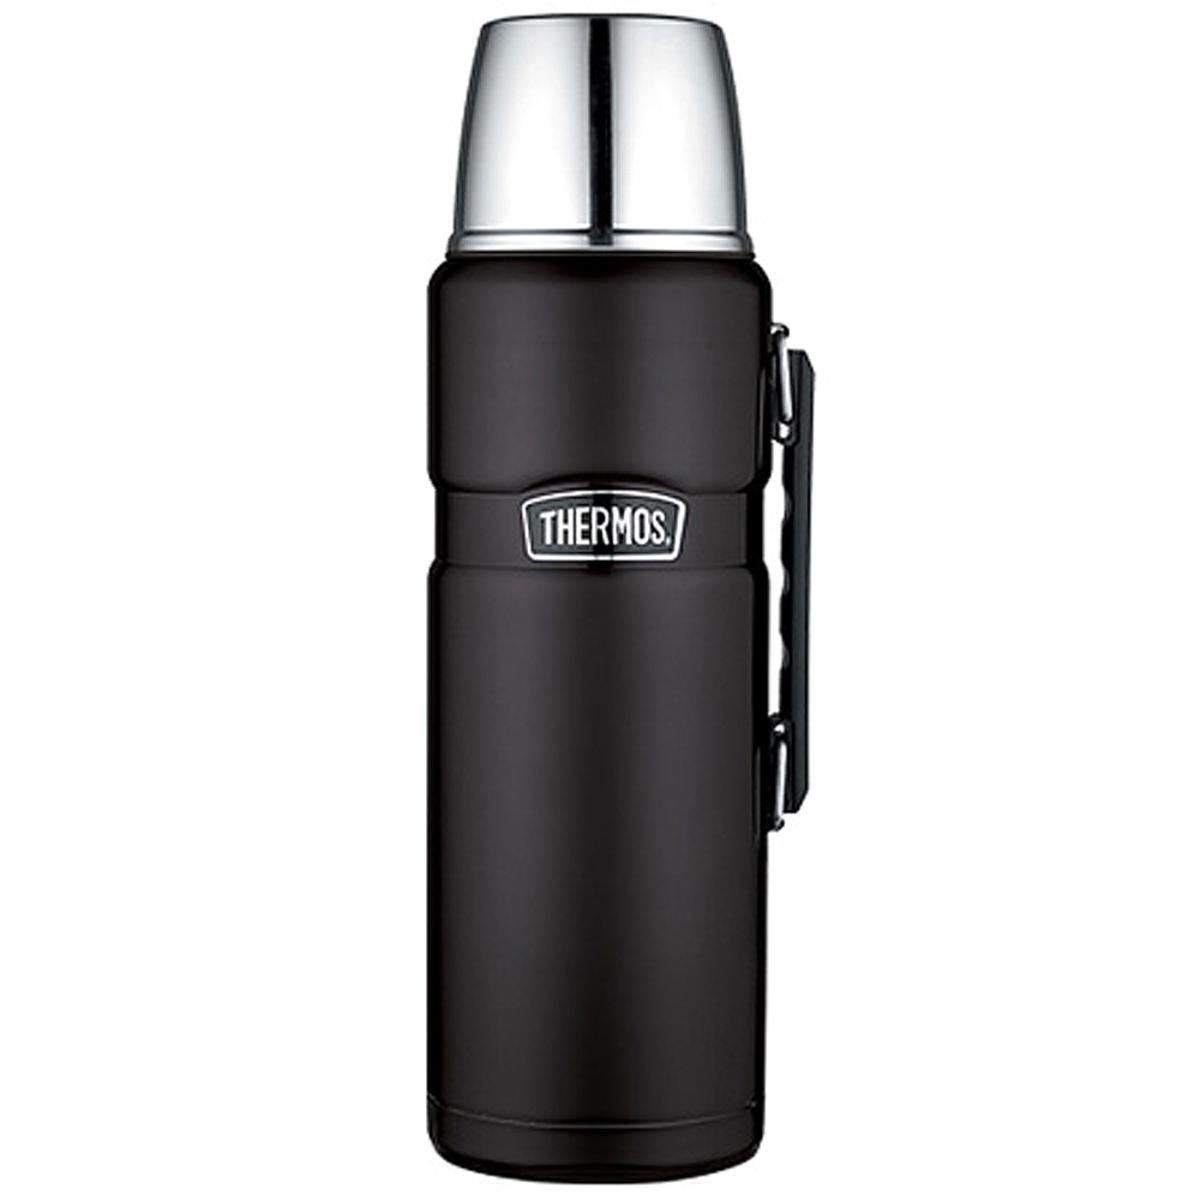 Thermos Stainless King Vacuum Insulated Beverage Bottle (Black - 2L) by Thermos